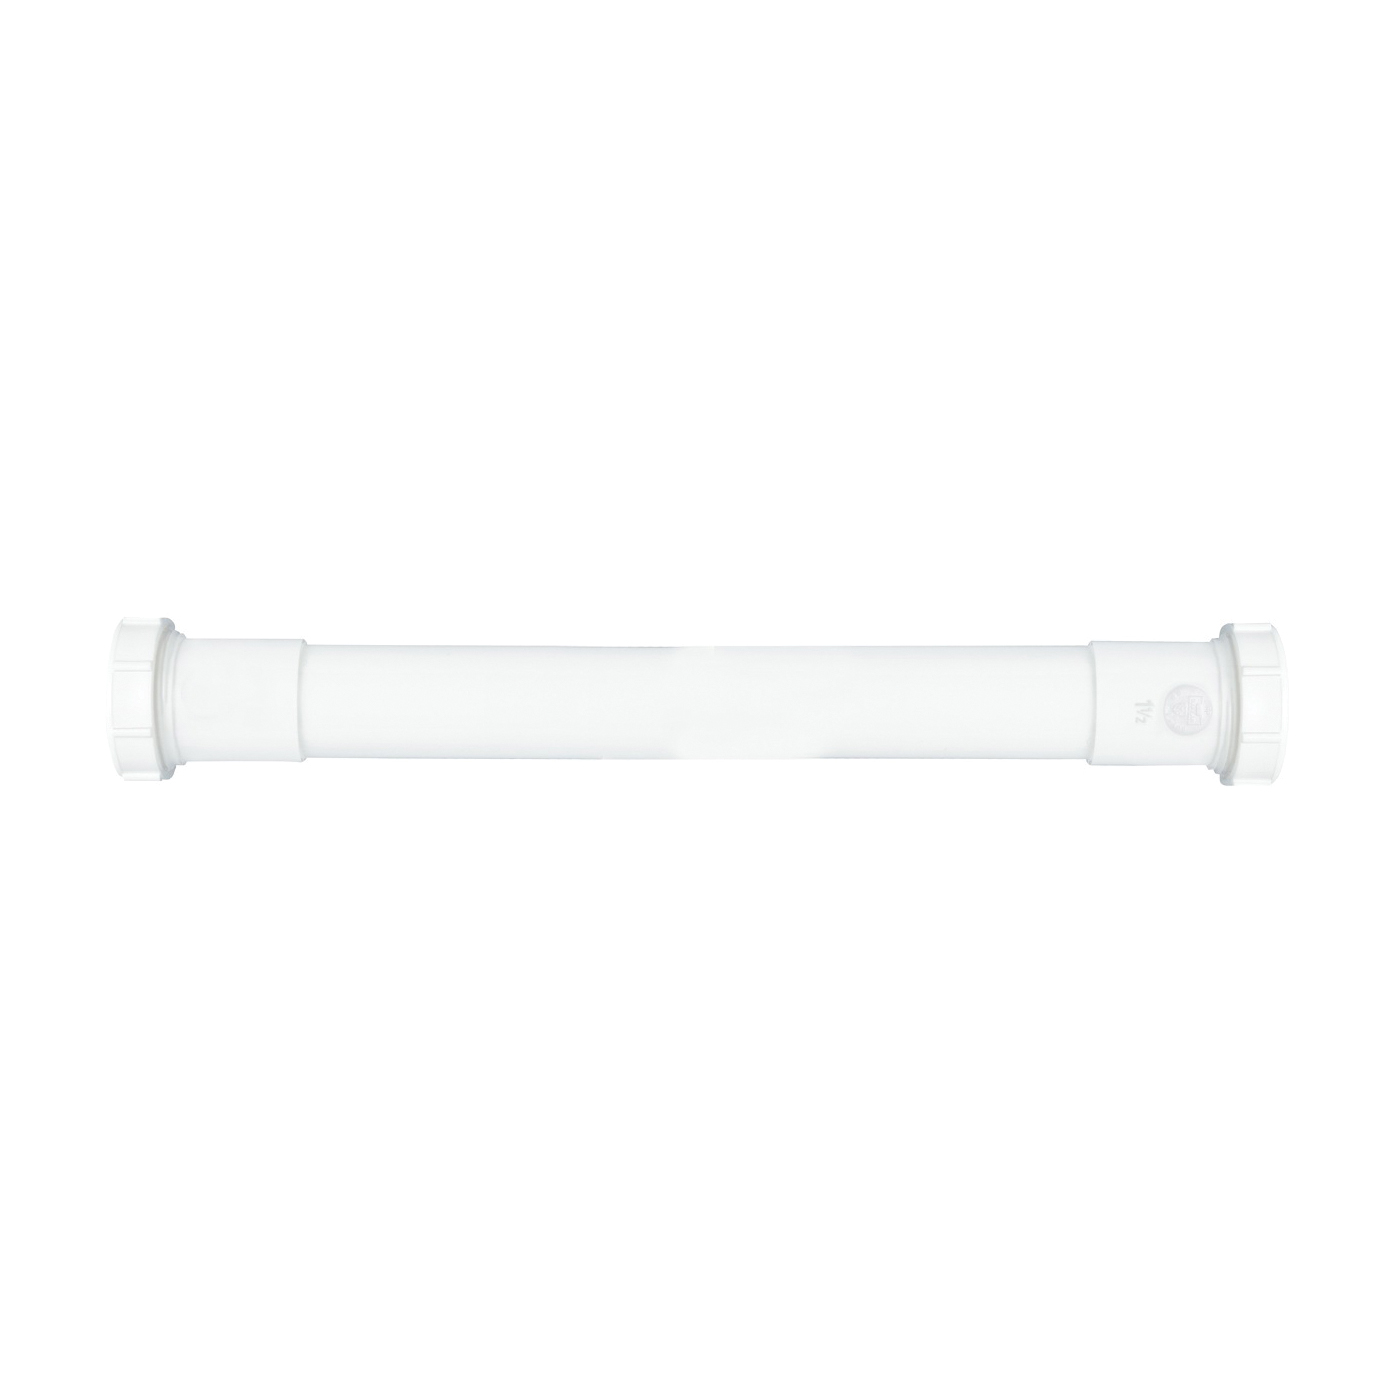 Picture of Plumb Pak PP41-16W Extension Tube, 1-1/2 in, 16 in L, Slip Joint, Plastic, White